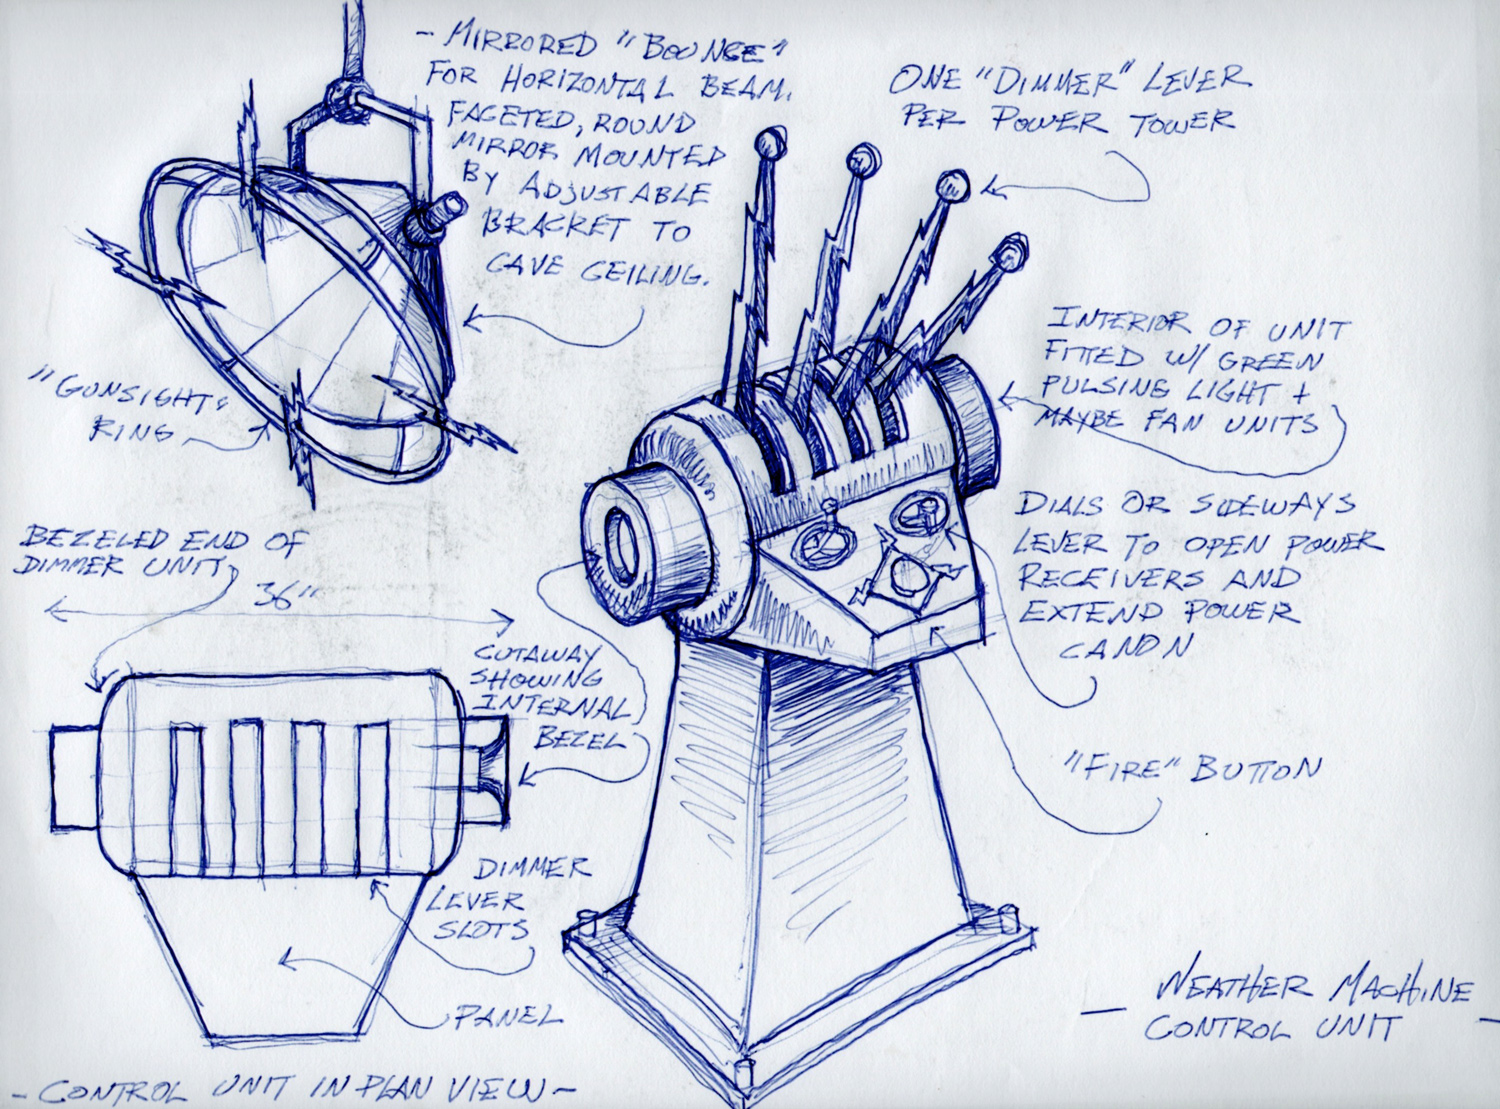 A sketch of the weather machine's control unit and proposed light for Teen Beach Movie.